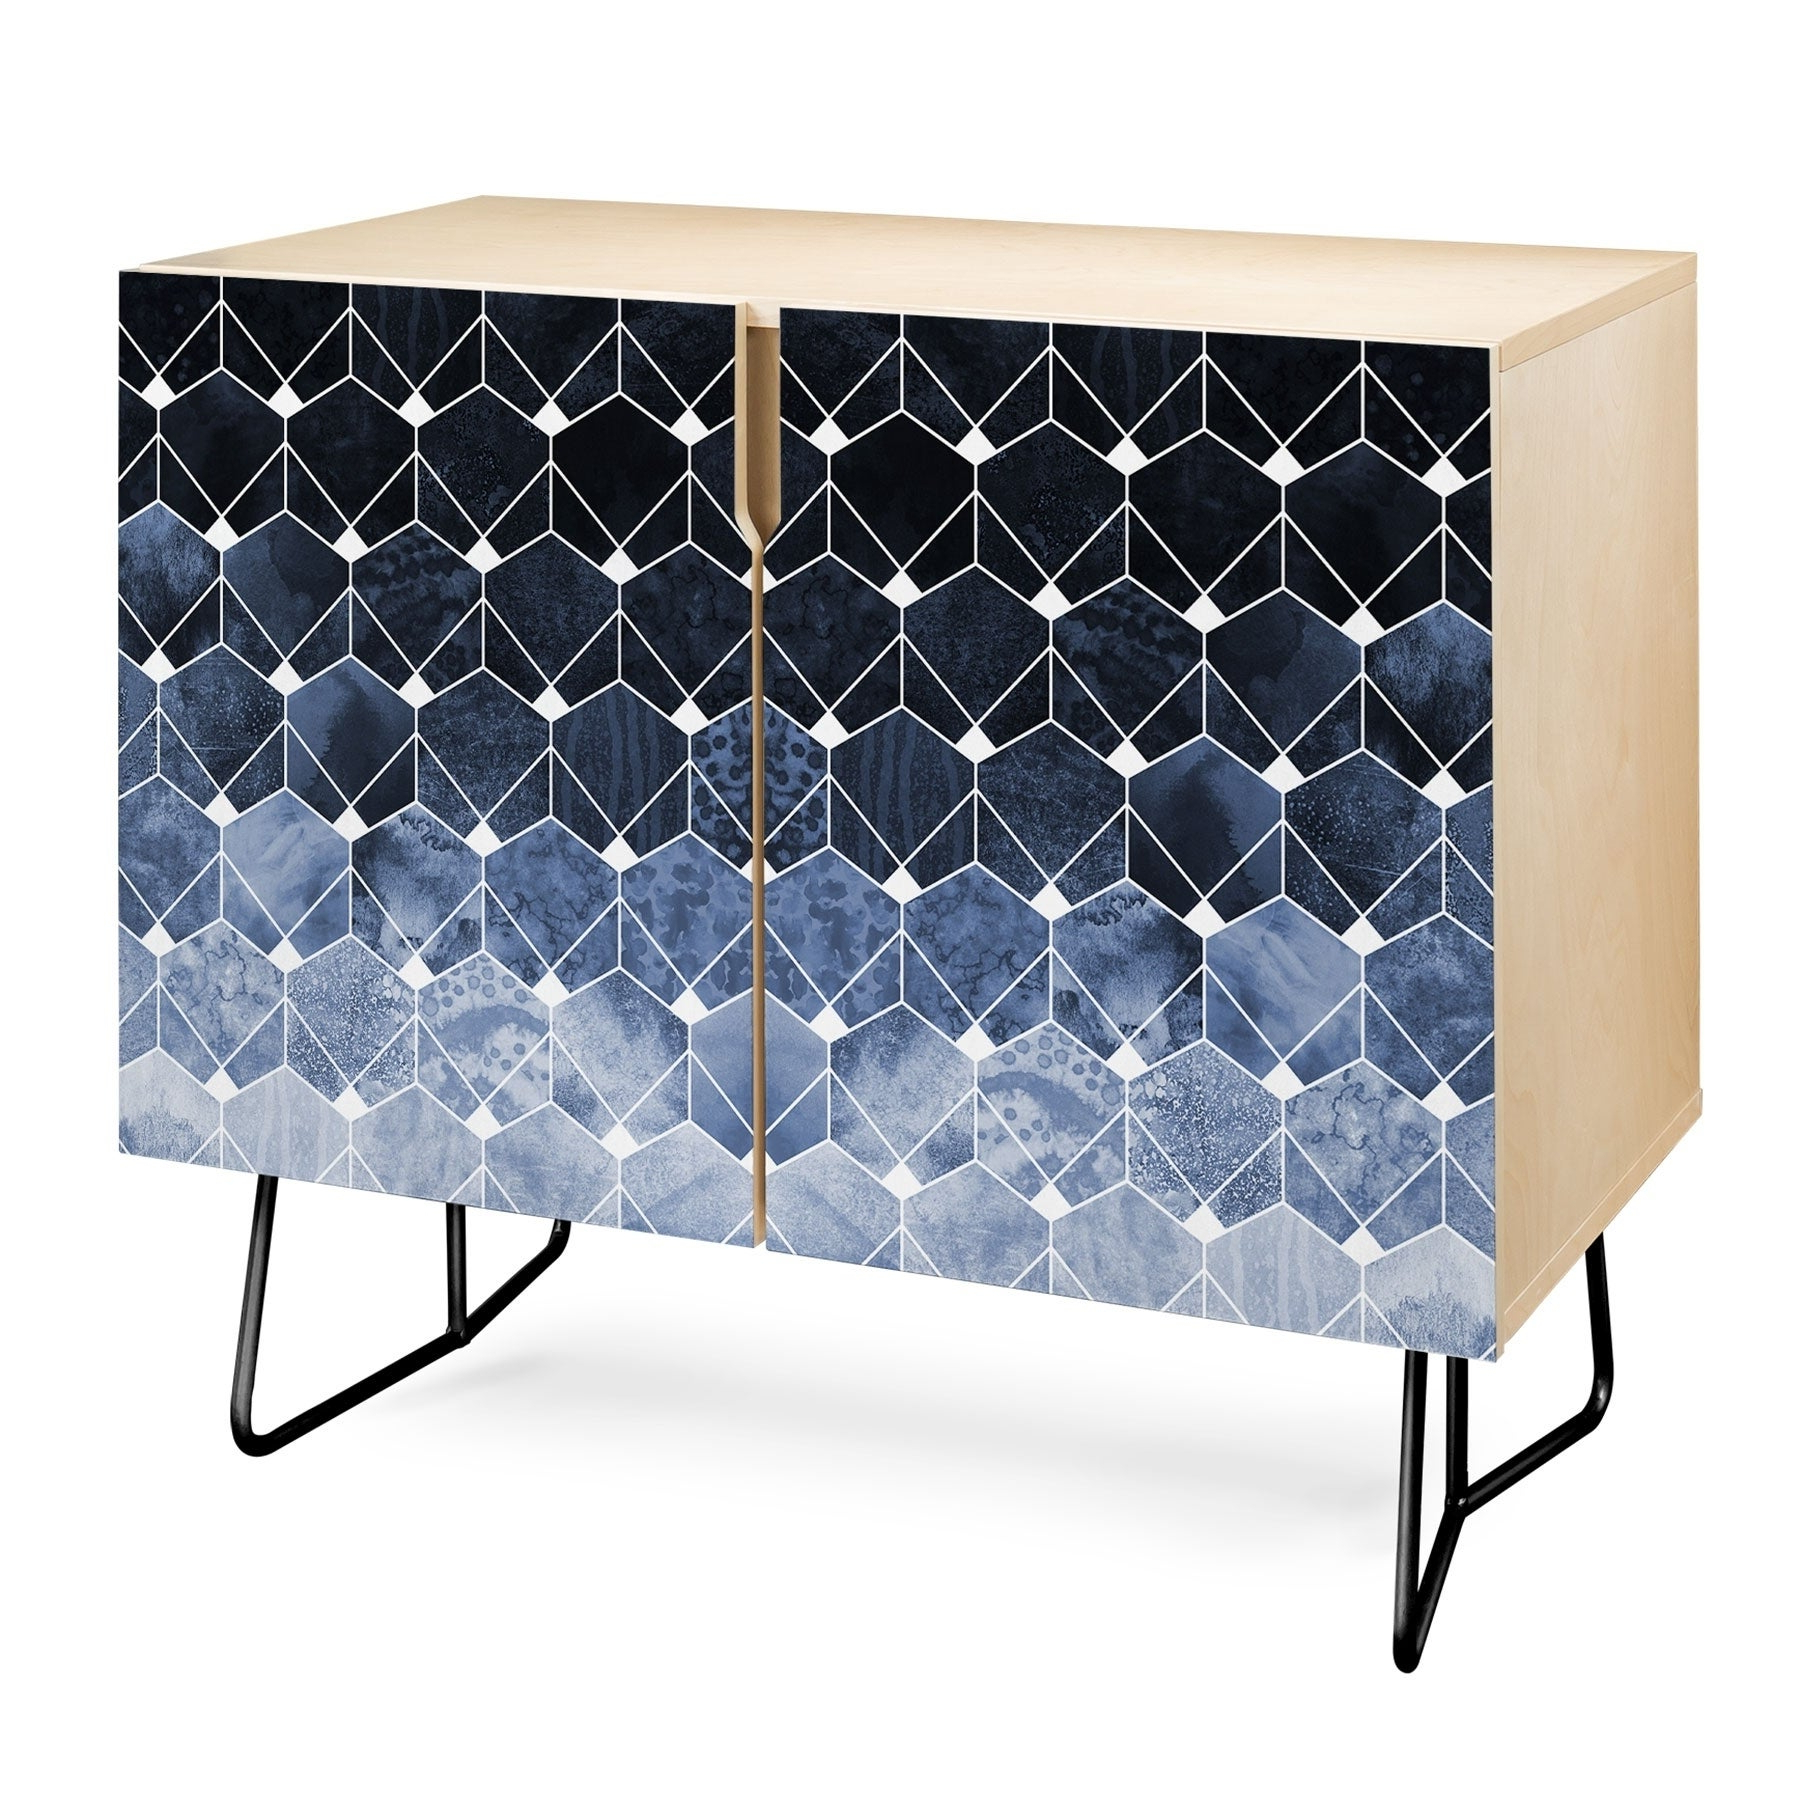 Deny Designs Blue Hexagons And Diamonds Credenza (Birch Or Walnut, 2 Leg  Options) Regarding Line Geo Credenzas (View 2 of 20)